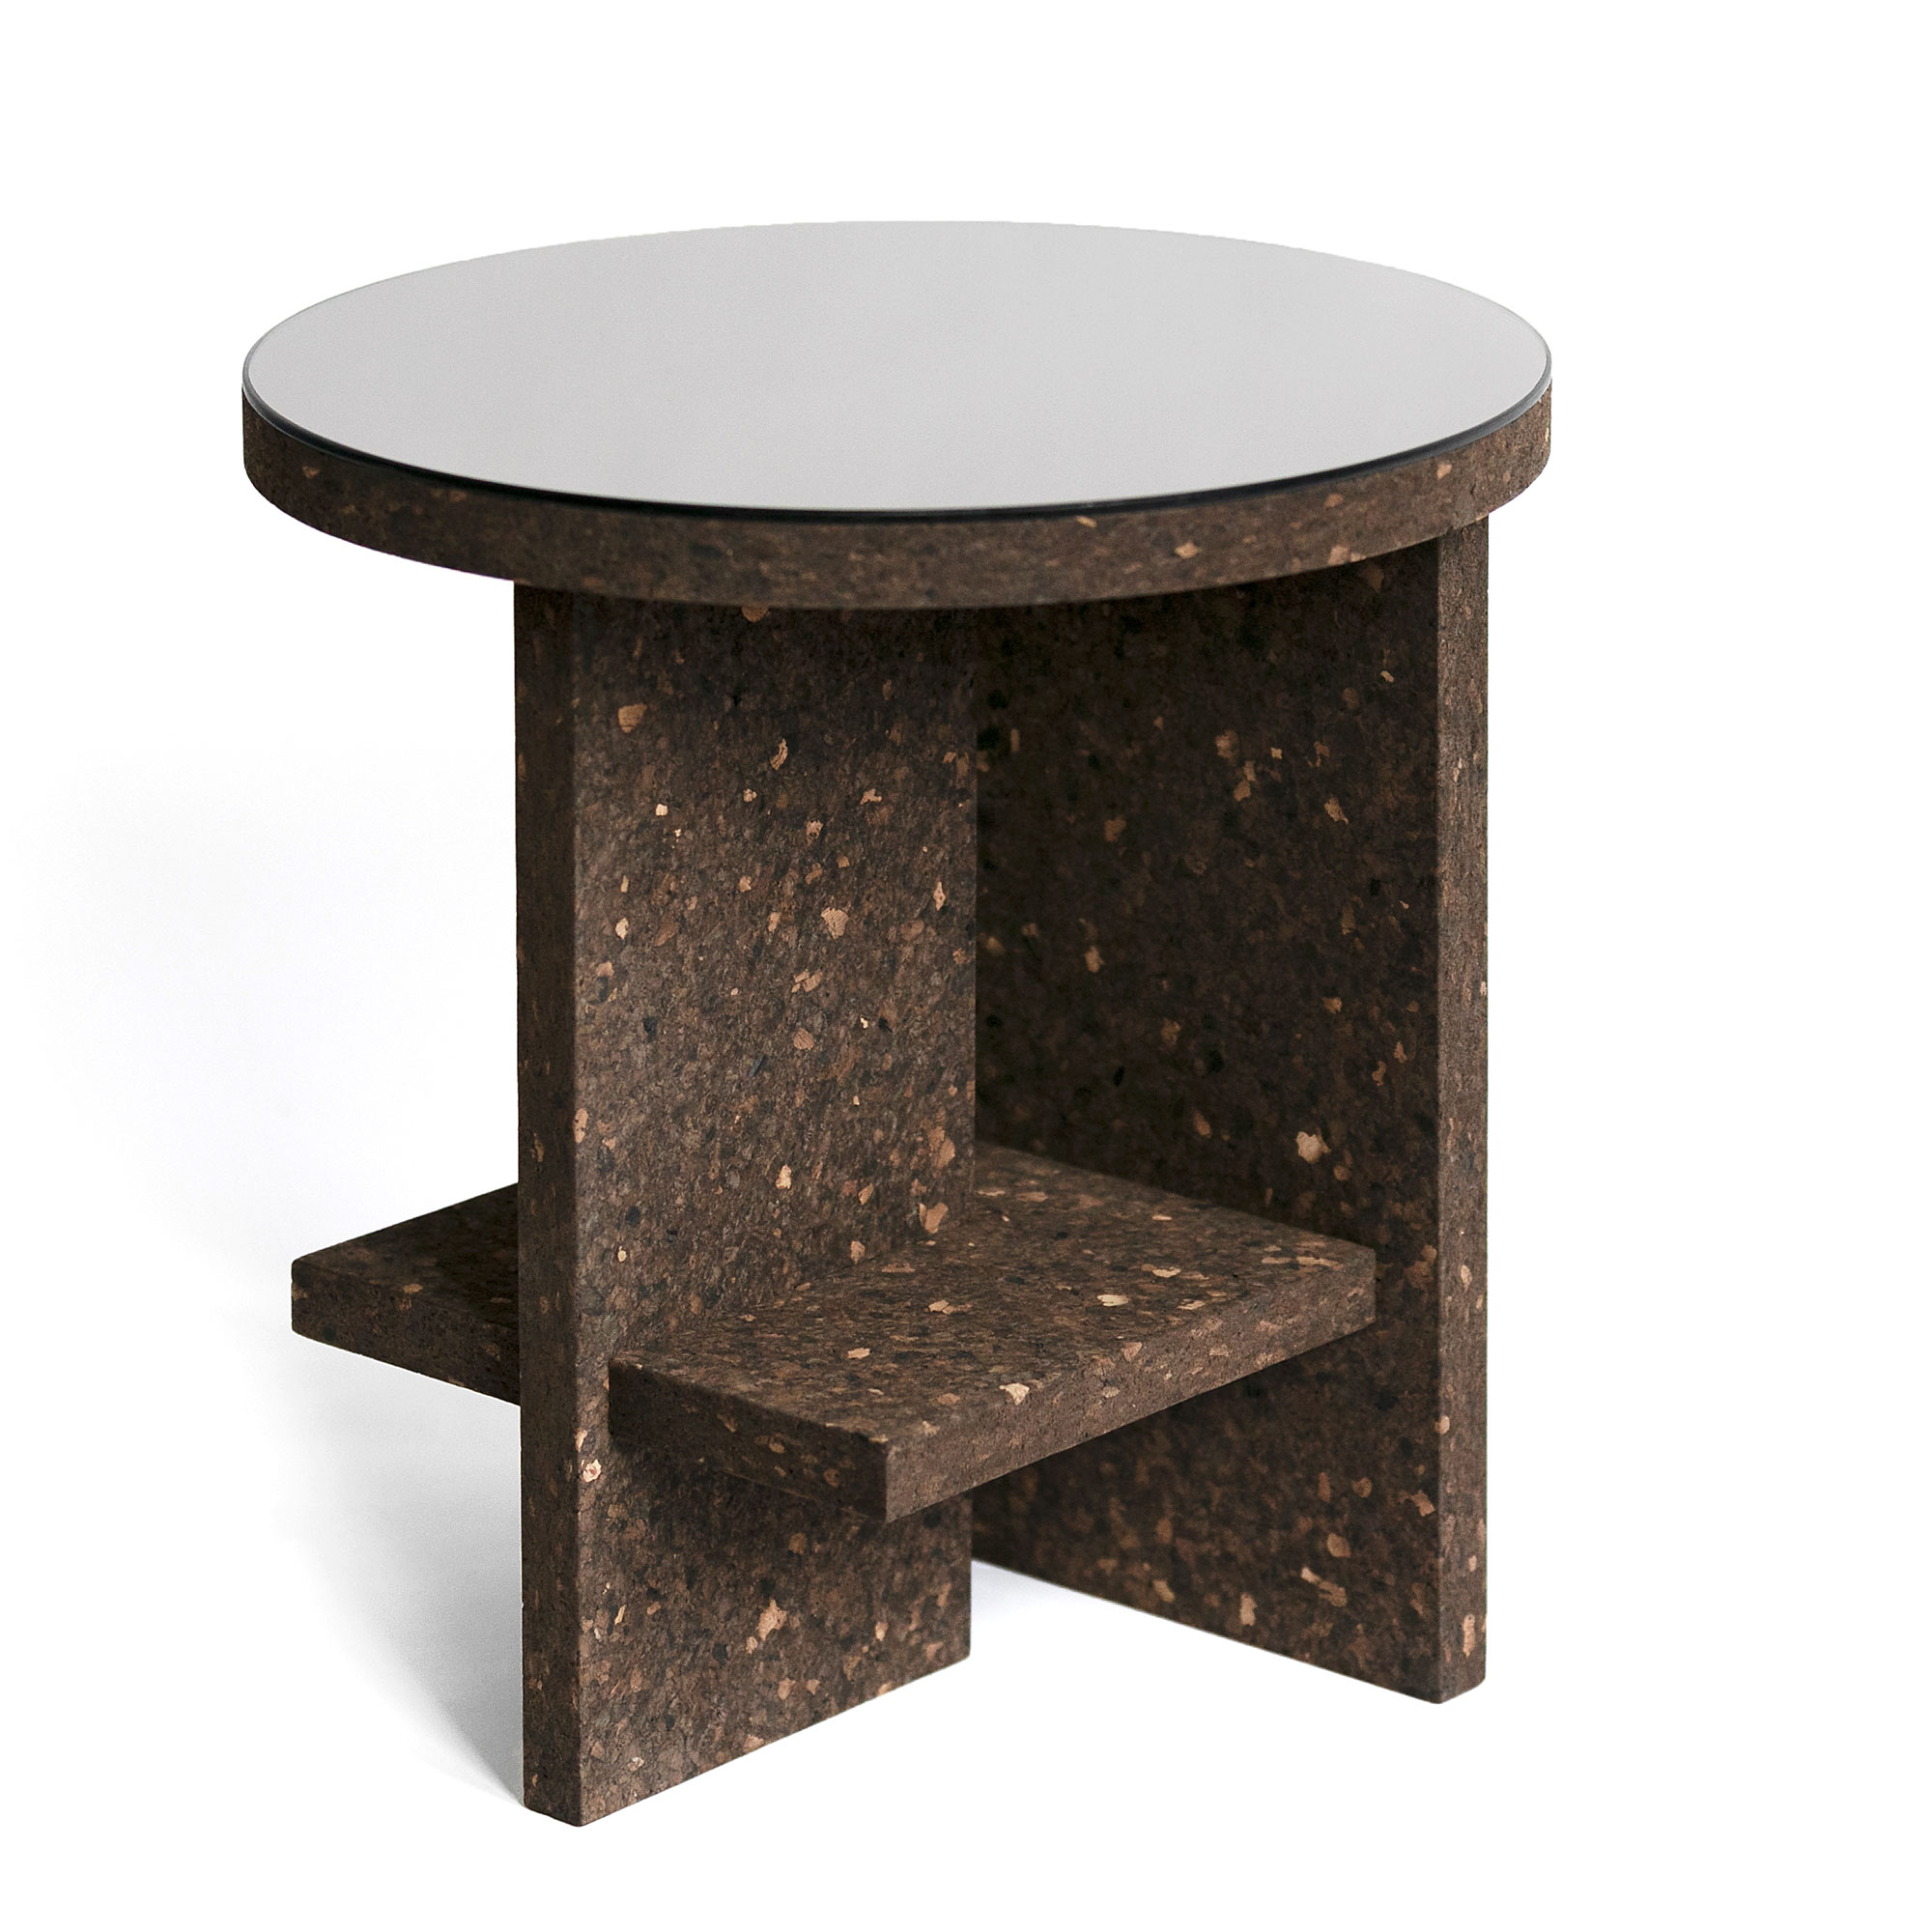 Cruz del Sur Side Table Dark Cork - <p>Compact and light, flat-pack side table in Portuguese cork. This special edition designed for Disegno Magazine Cruz del Sur table snaps on together in just seconds without the need of tools, it's made in London using sustainable cork from Portugal and comes in a flat-pack. This mighty but compact table features a shelf for reading books and accessories to keep your tabletop clutter-free. Available in light or dark cork finished in natural oil-wax with the option to add-on a bronze finish mirror top. </p>